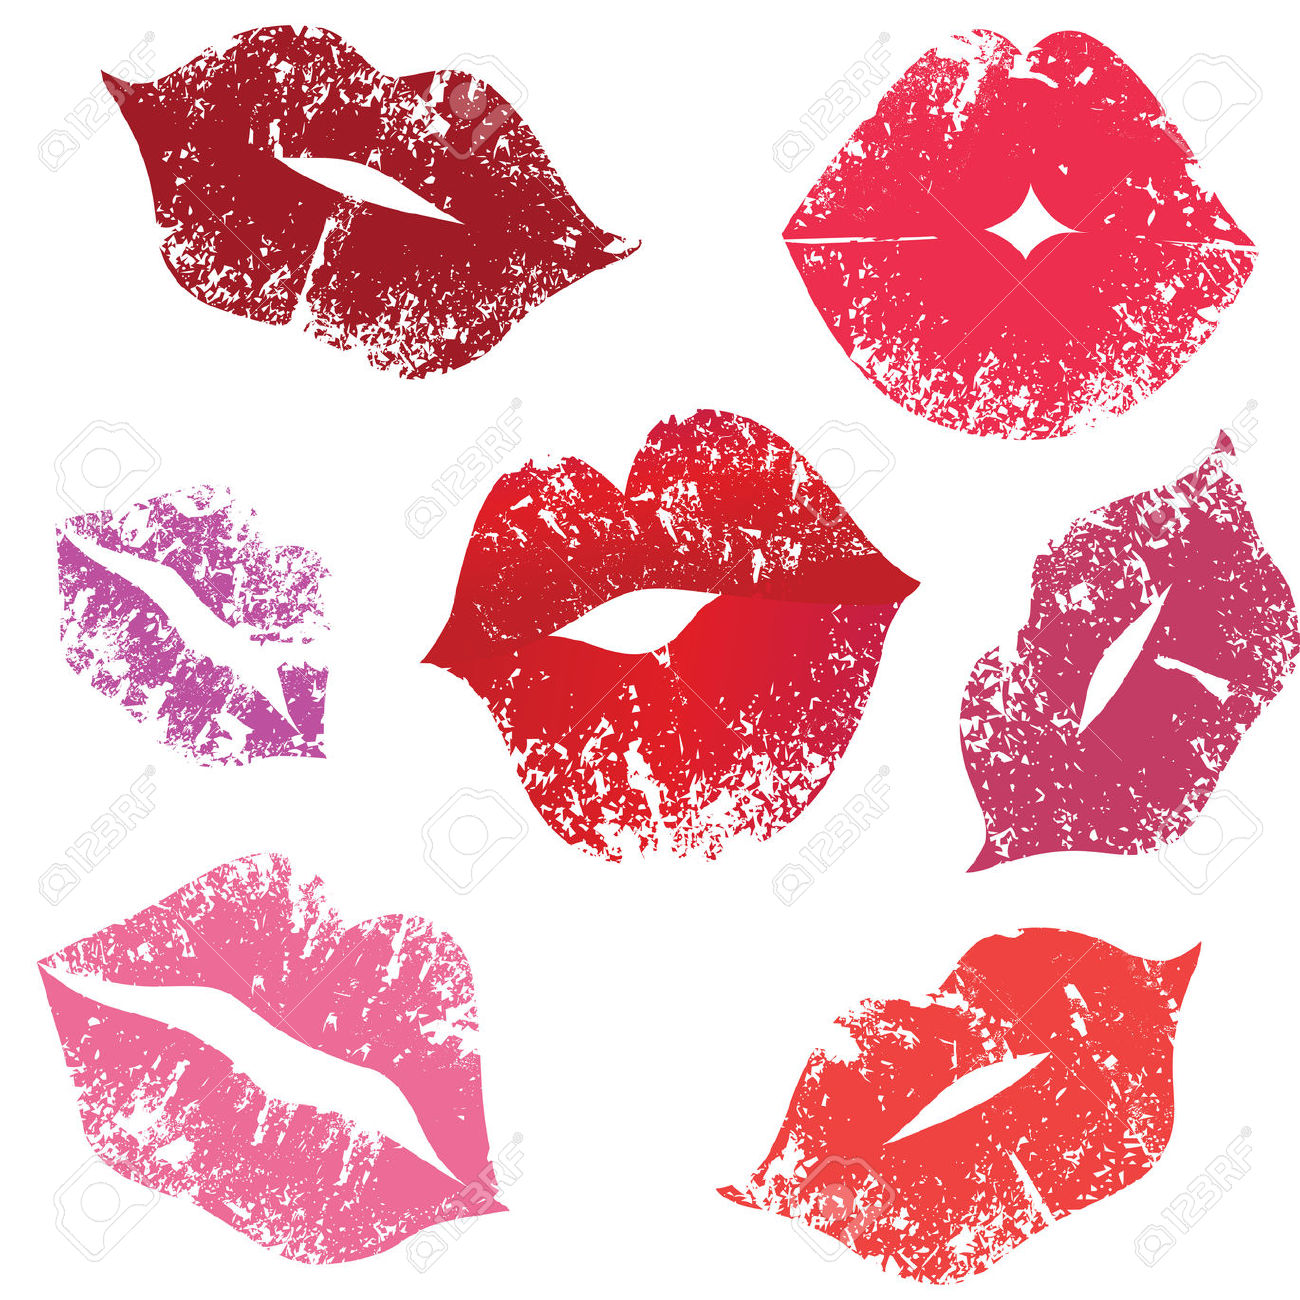 Kiss clipart #1, Download drawings